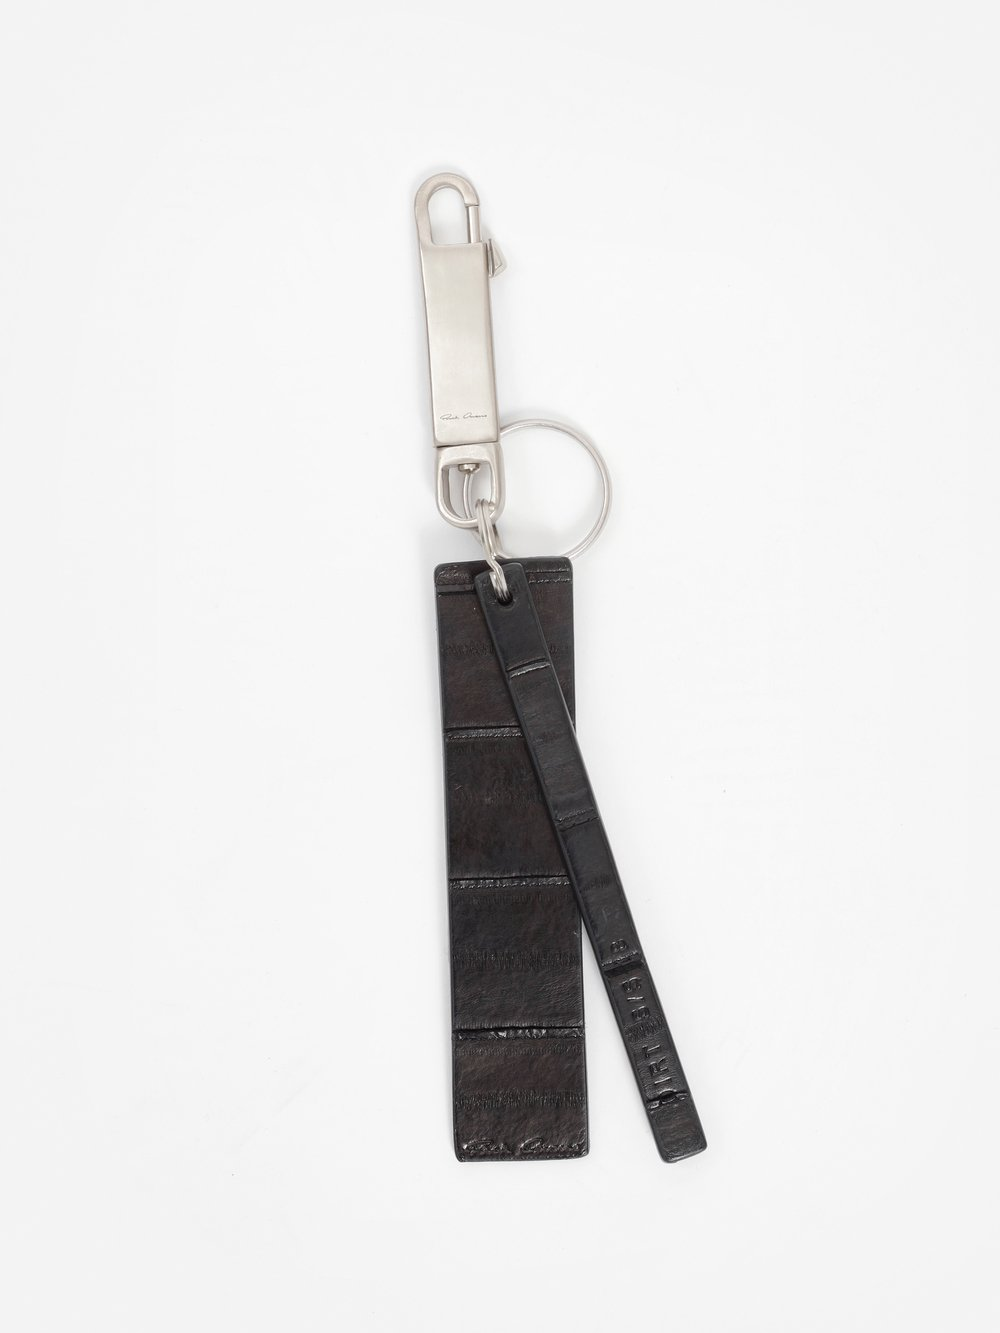 Leather Key Ring in Black from Antonioli